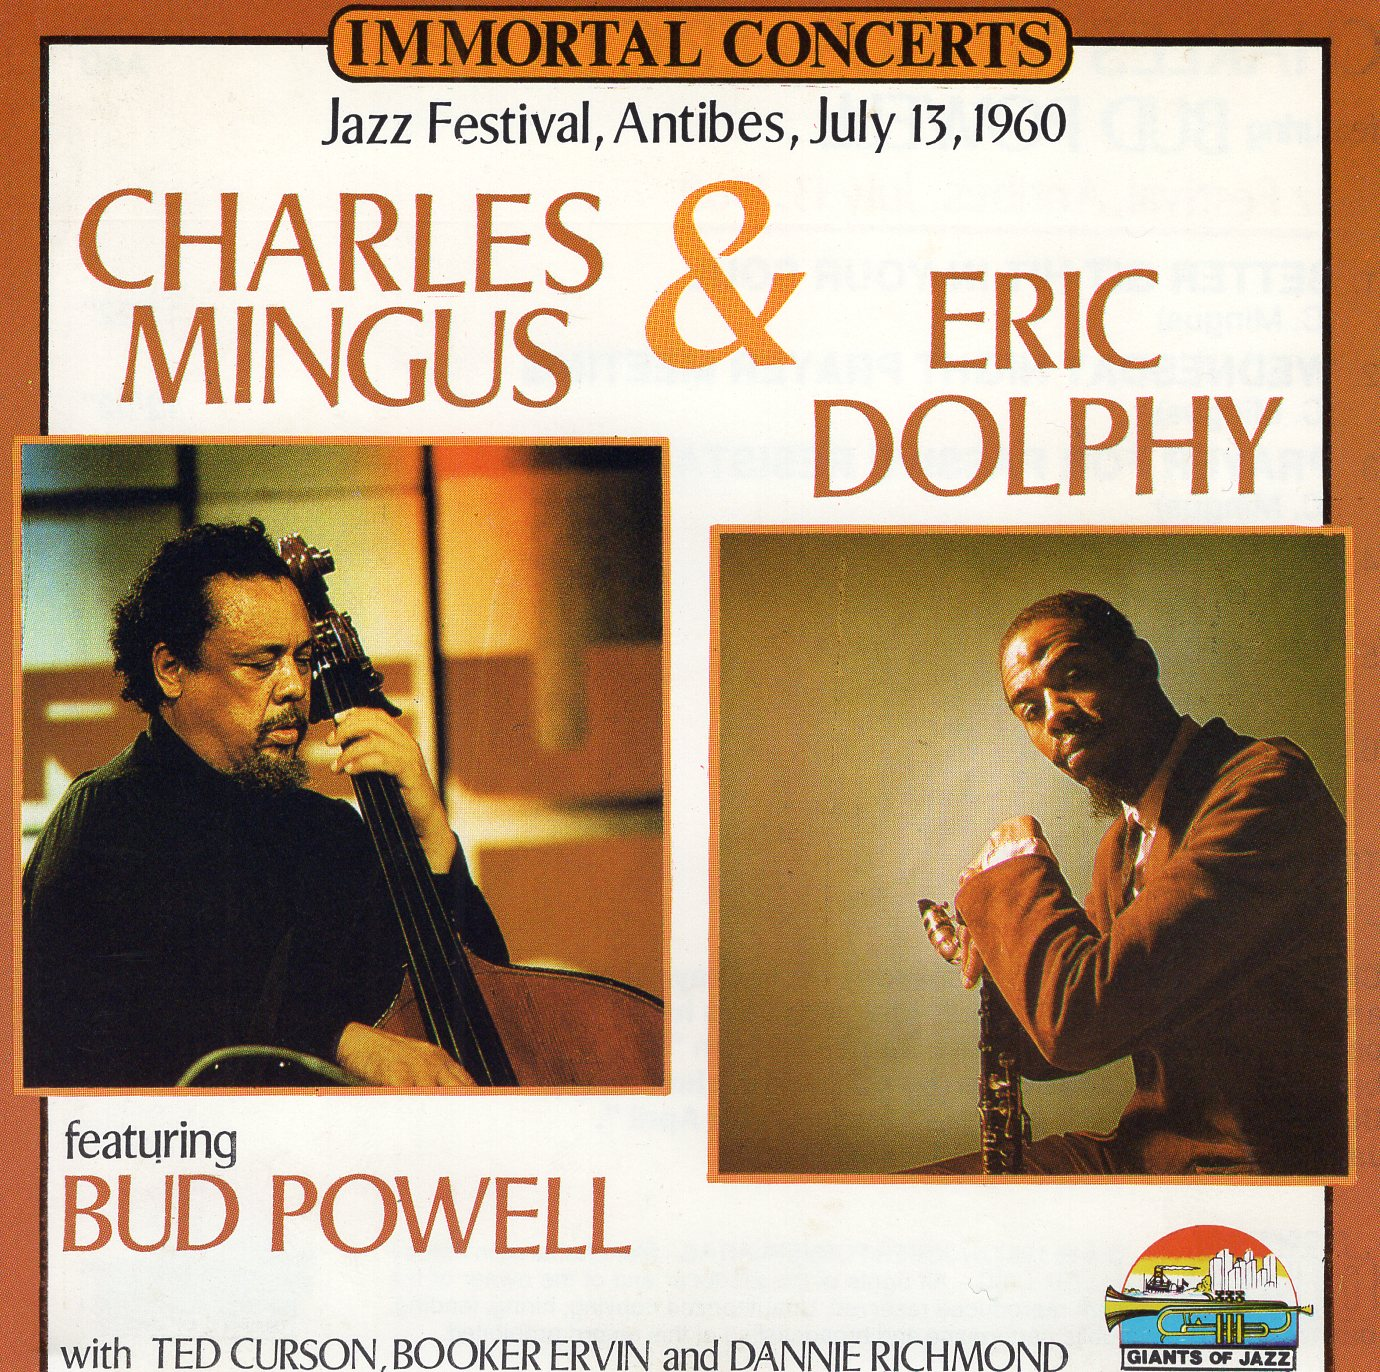 """Jazz Festival, Antibes, July 13, 1960 Charles Mingus & Eric Dolphy"" Charles Mingus, Eric Dolphy"